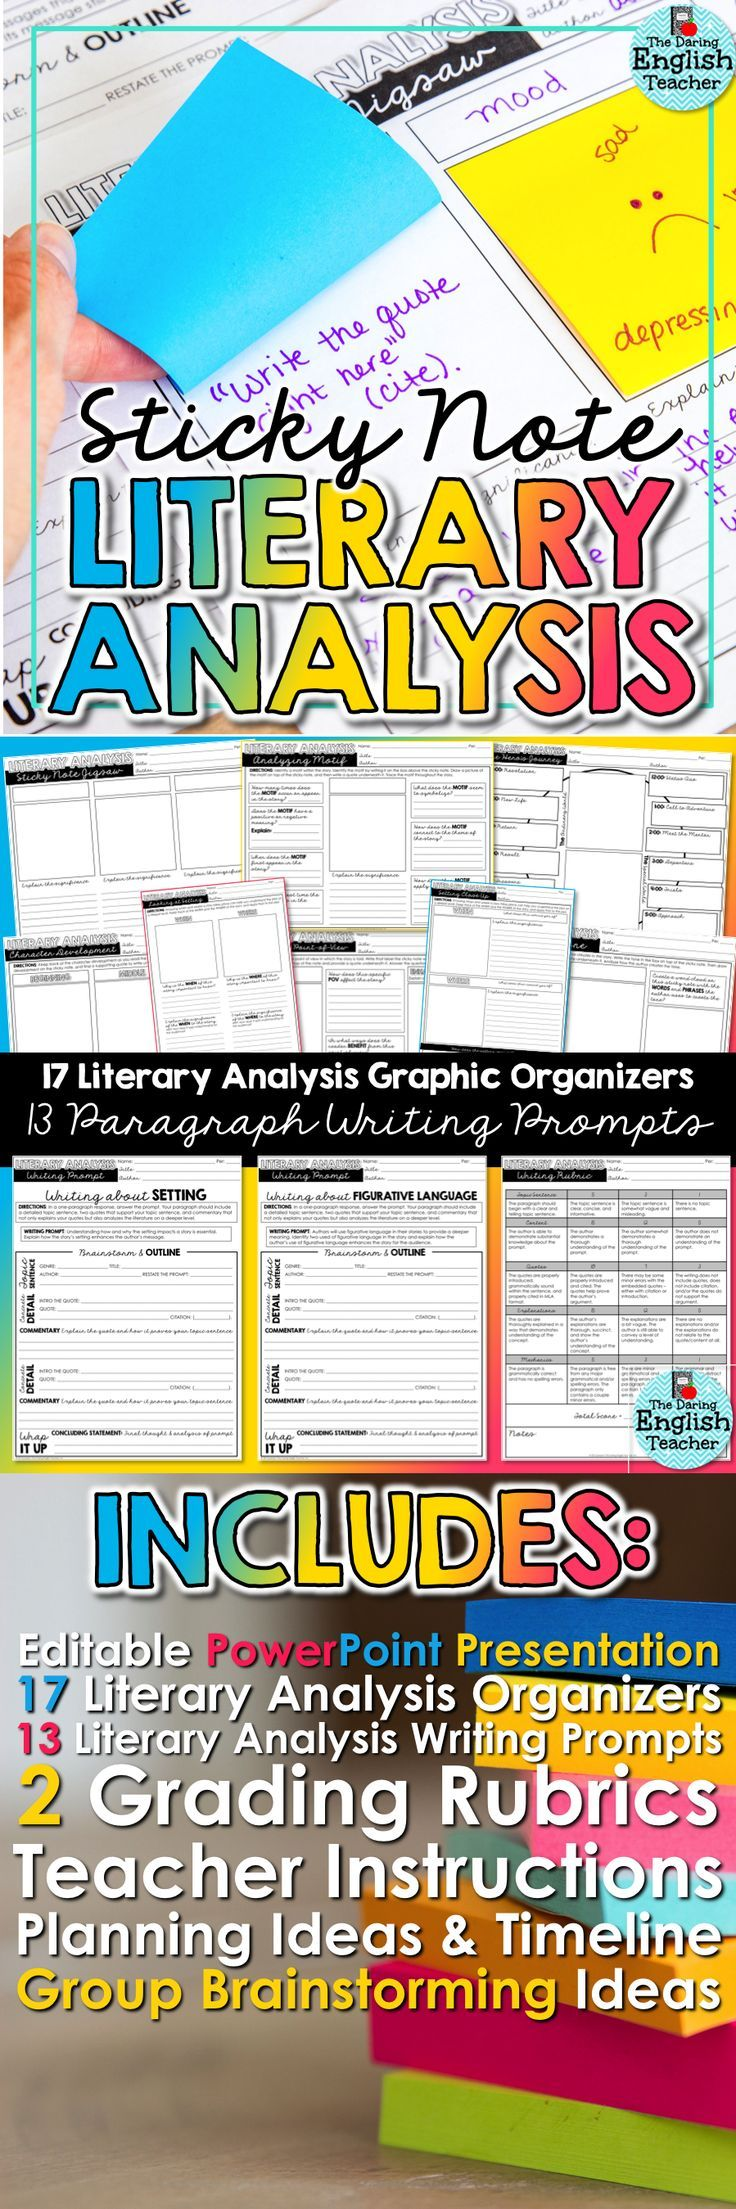 Engage your students in an interactive and hands-on literary analysis unit with sticky notes! Ideal for the middle school and high school English class, this unit will help students read the text more closely while also preparing them to write thoughtful and thorough literary analysis responses.